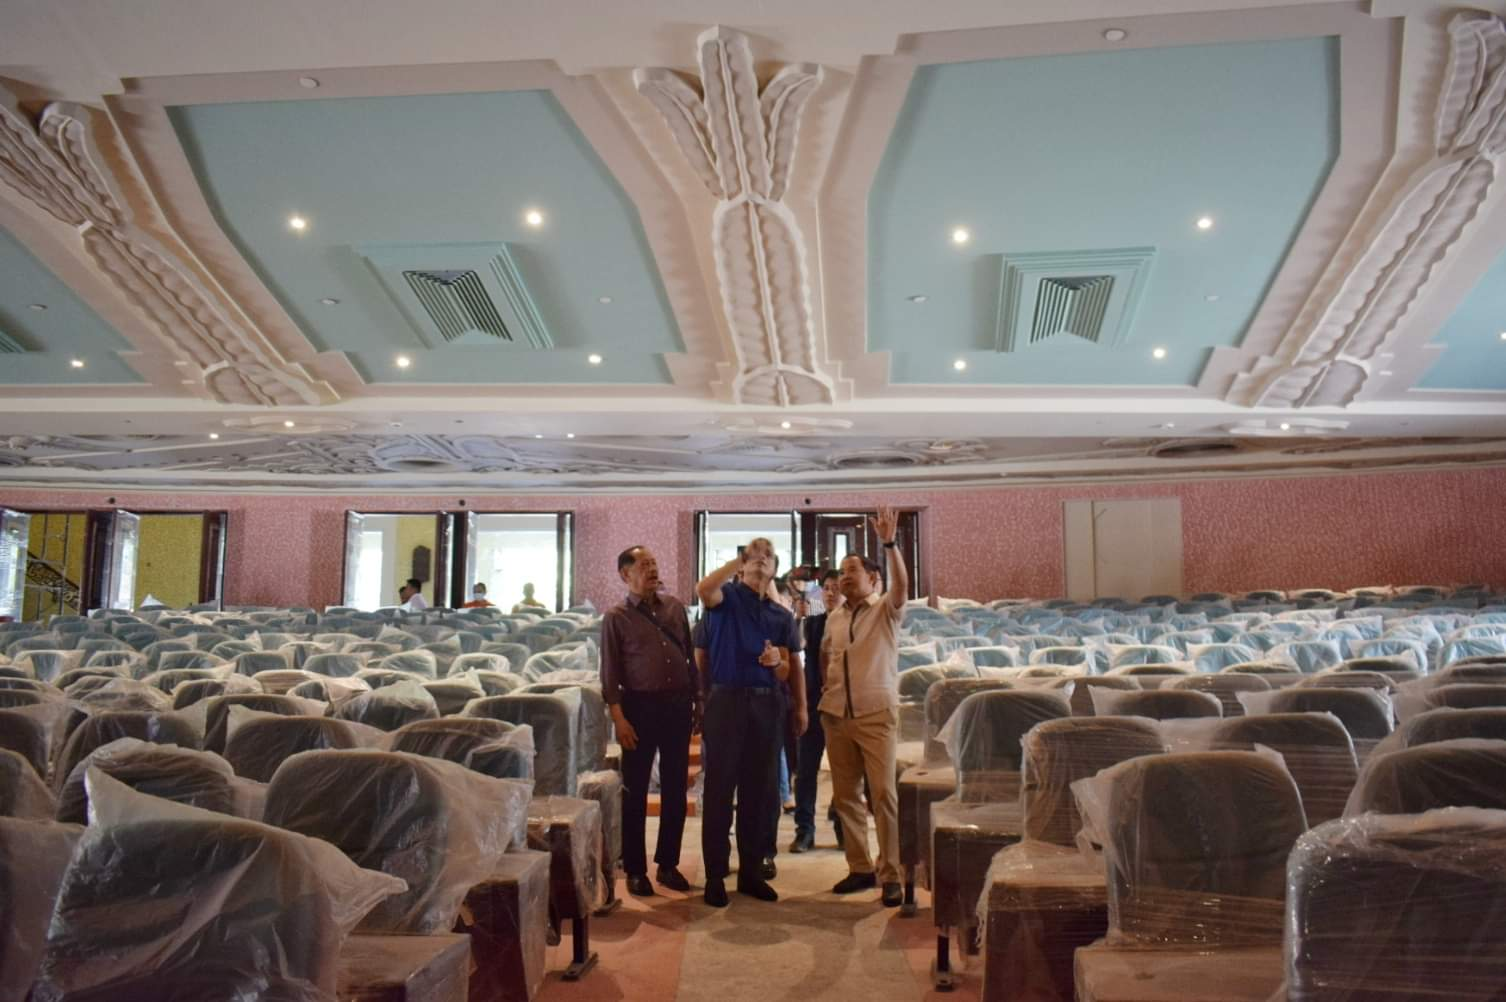 Mayor Isko Moreno Domagoso inspecting the progress of the Manila Metropolitan Theater restoration.